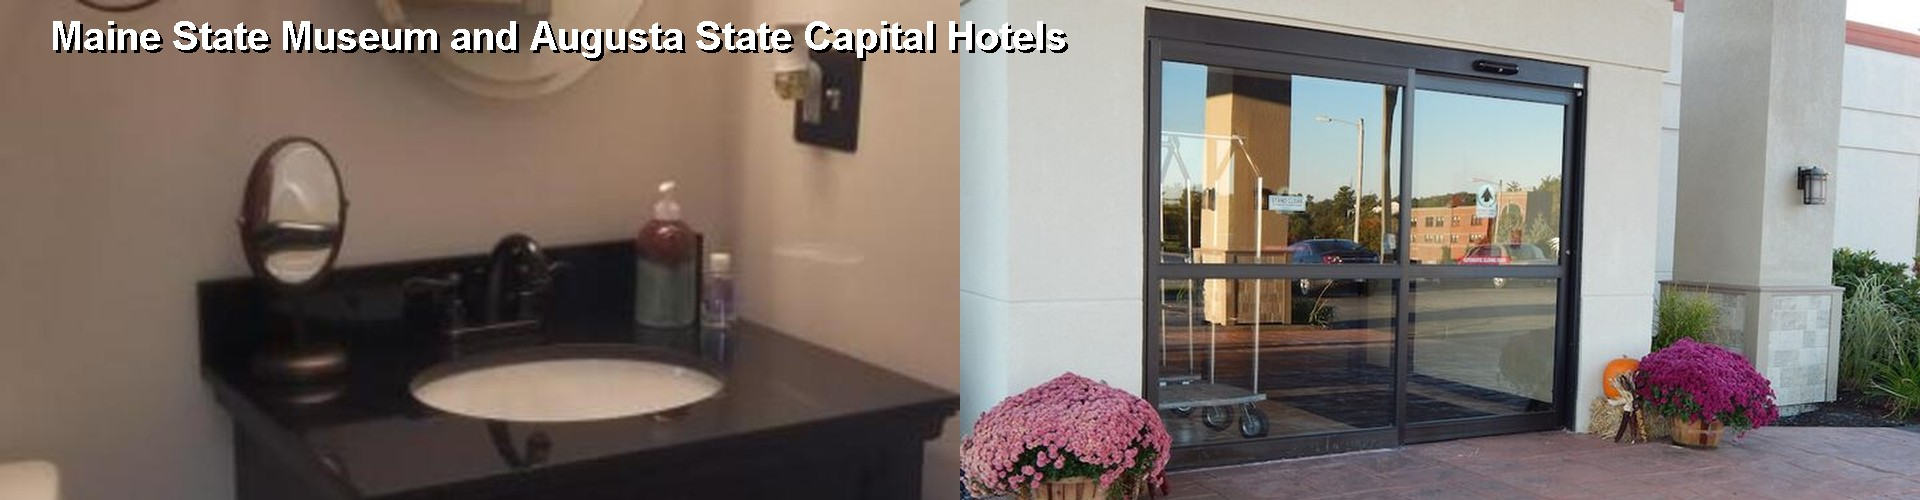 5 Best Hotels Near Maine State Museum And Augusta Capital